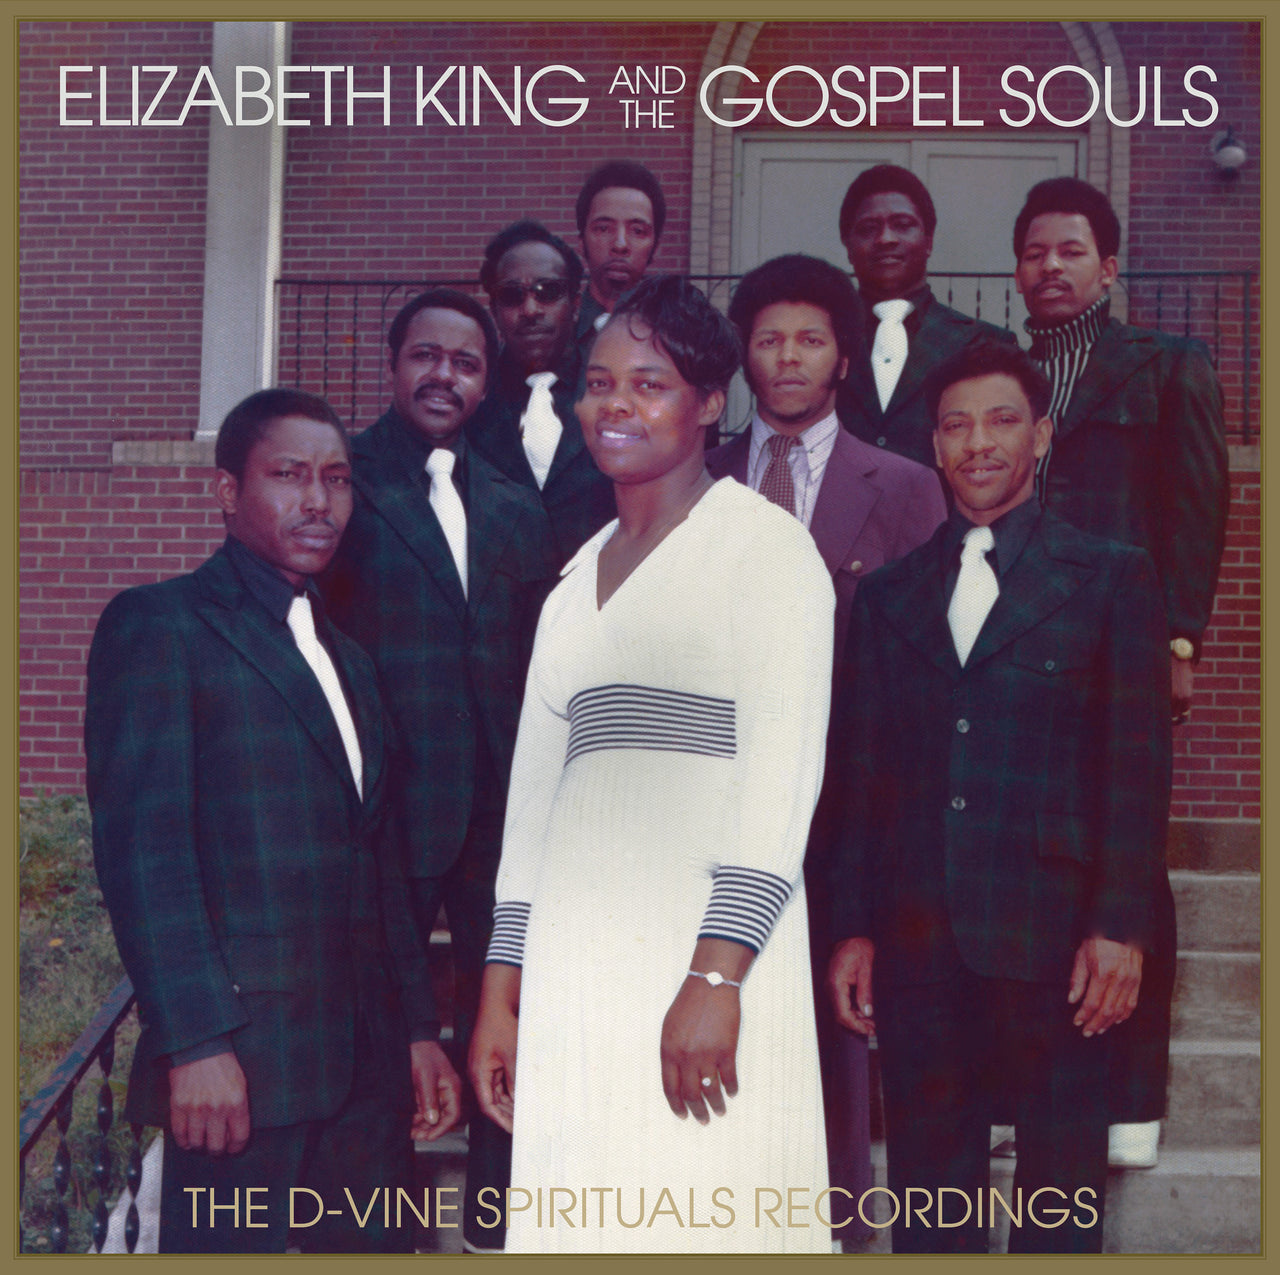 The D-Vine Spirituals Recordings